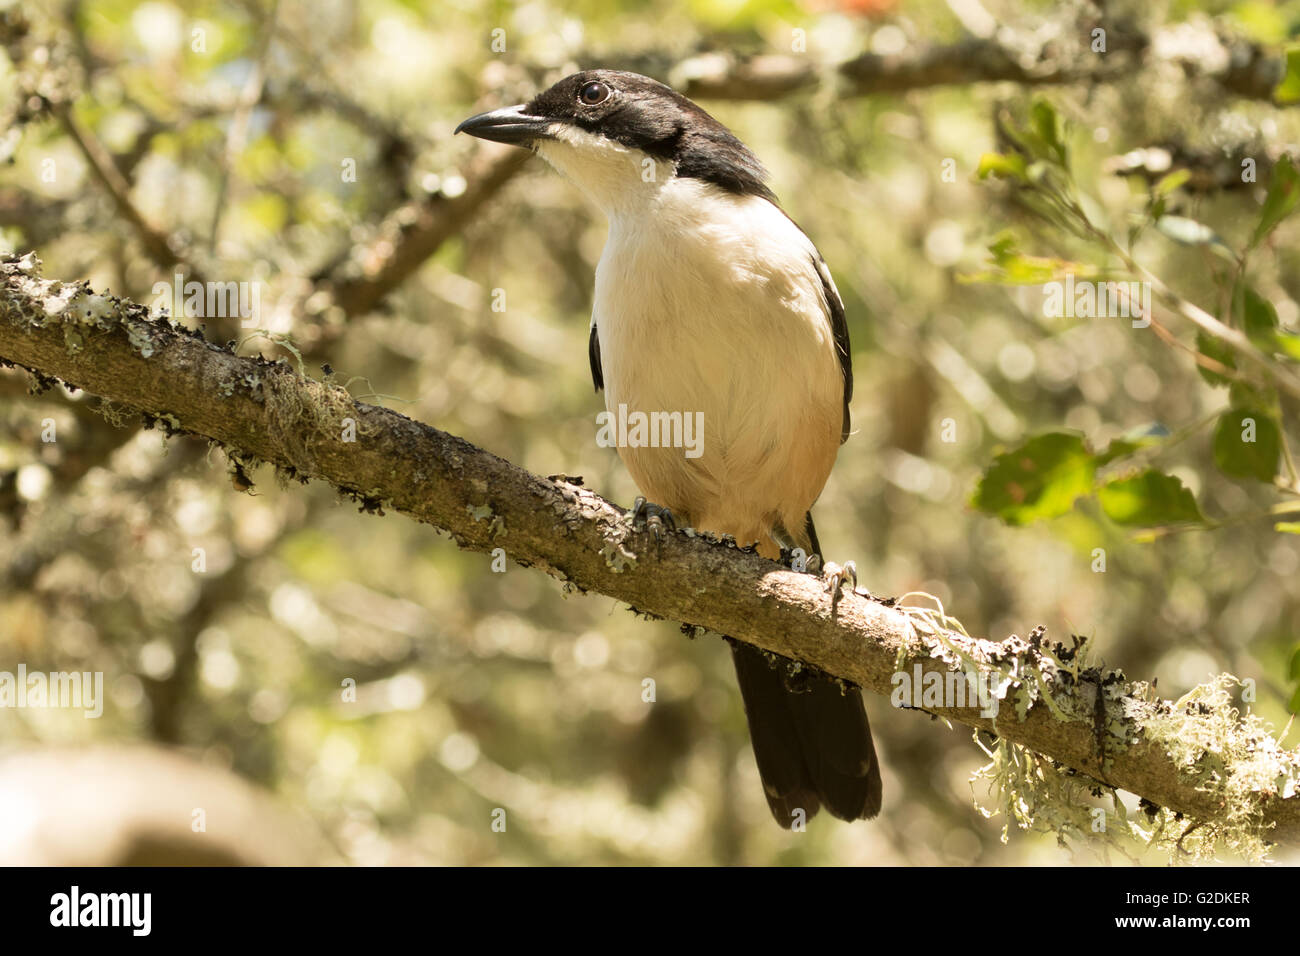 The Fiscal Flycatcher  (Melaenornis silens) - Stock Image